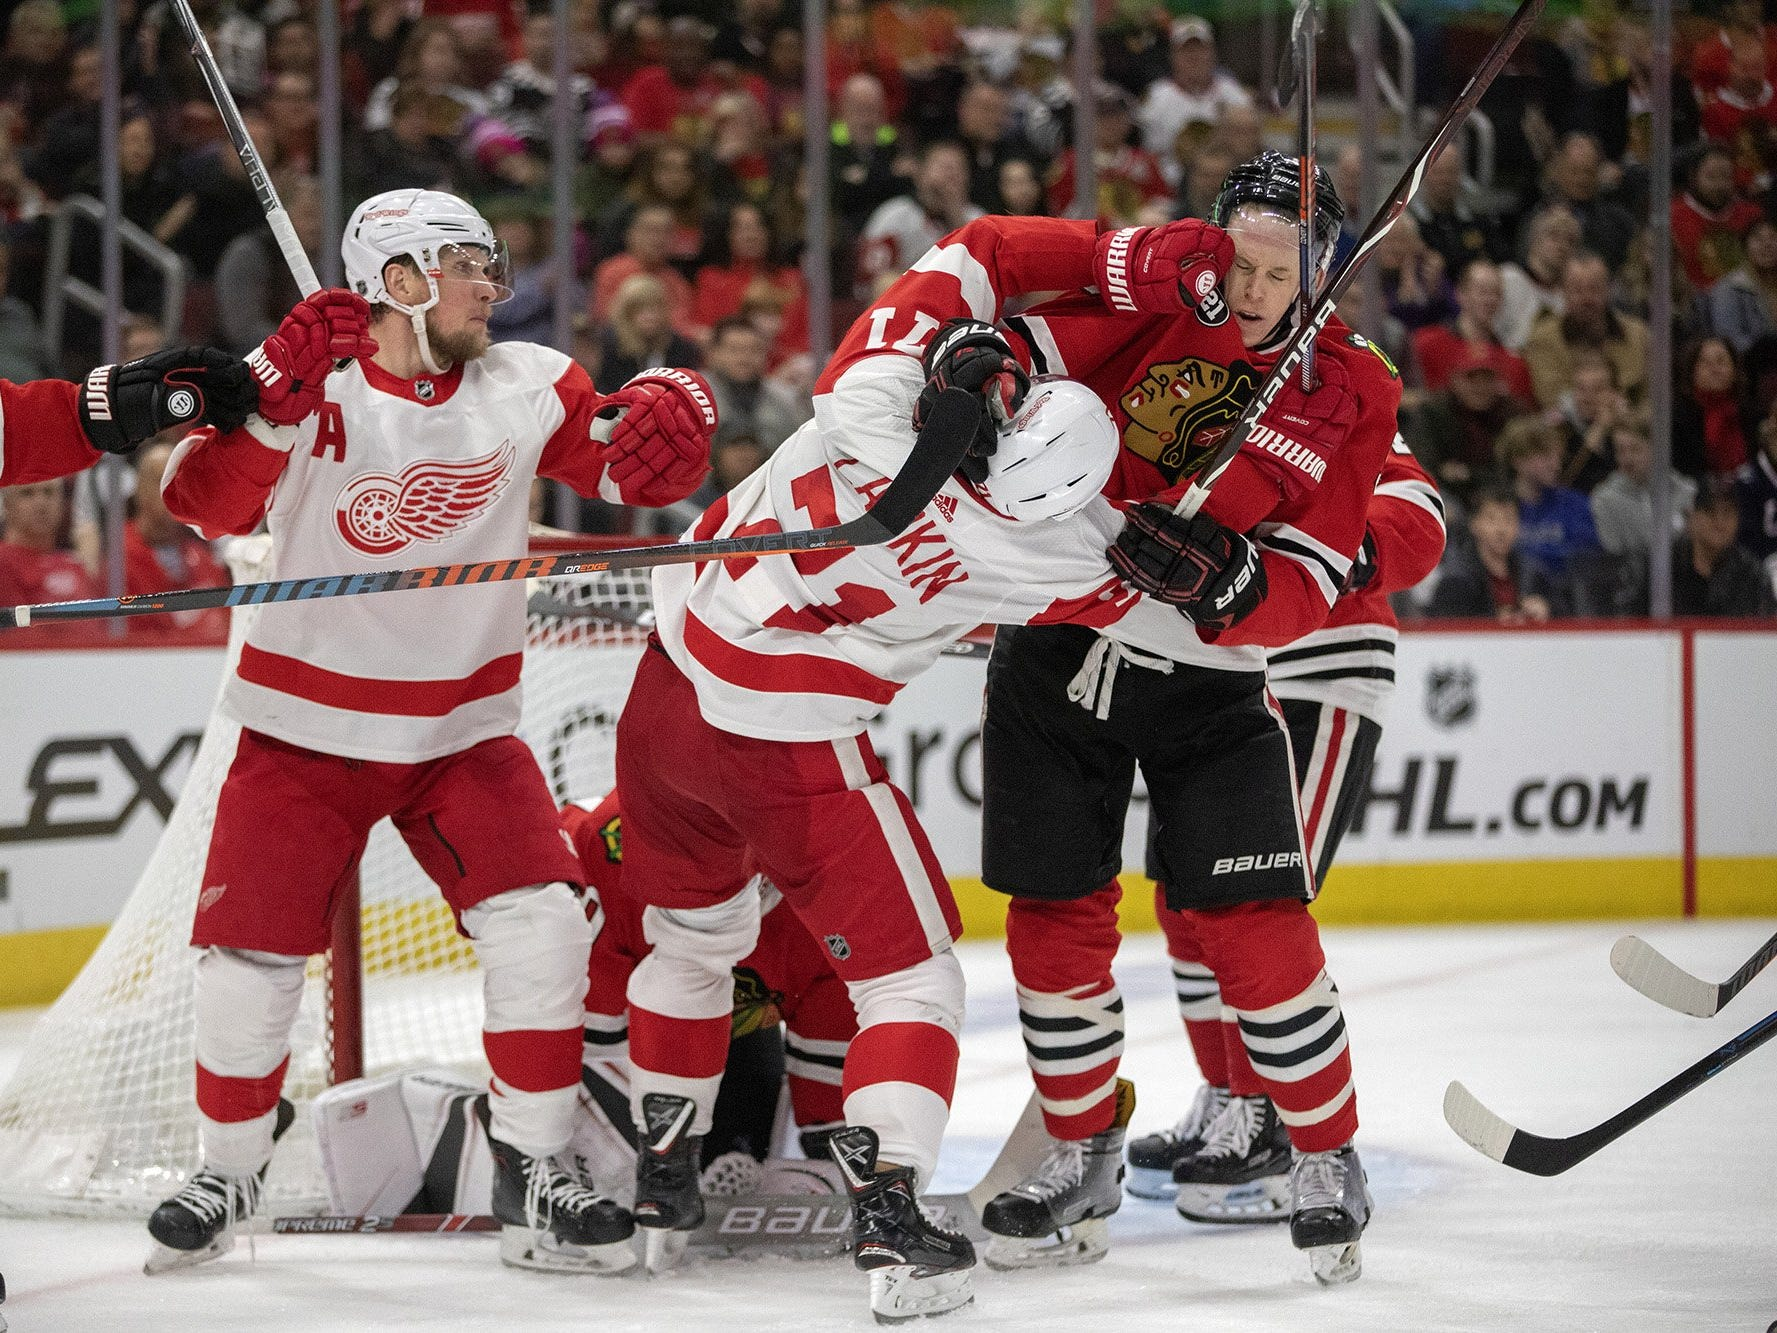 Detroit Red Wings center Dylan Larkin and Chicago Blackhawks defenseman Connor Murphy get in a scuffle during the second period on Sunday, Feb. 10, 2019, at the United Center in Chicago.